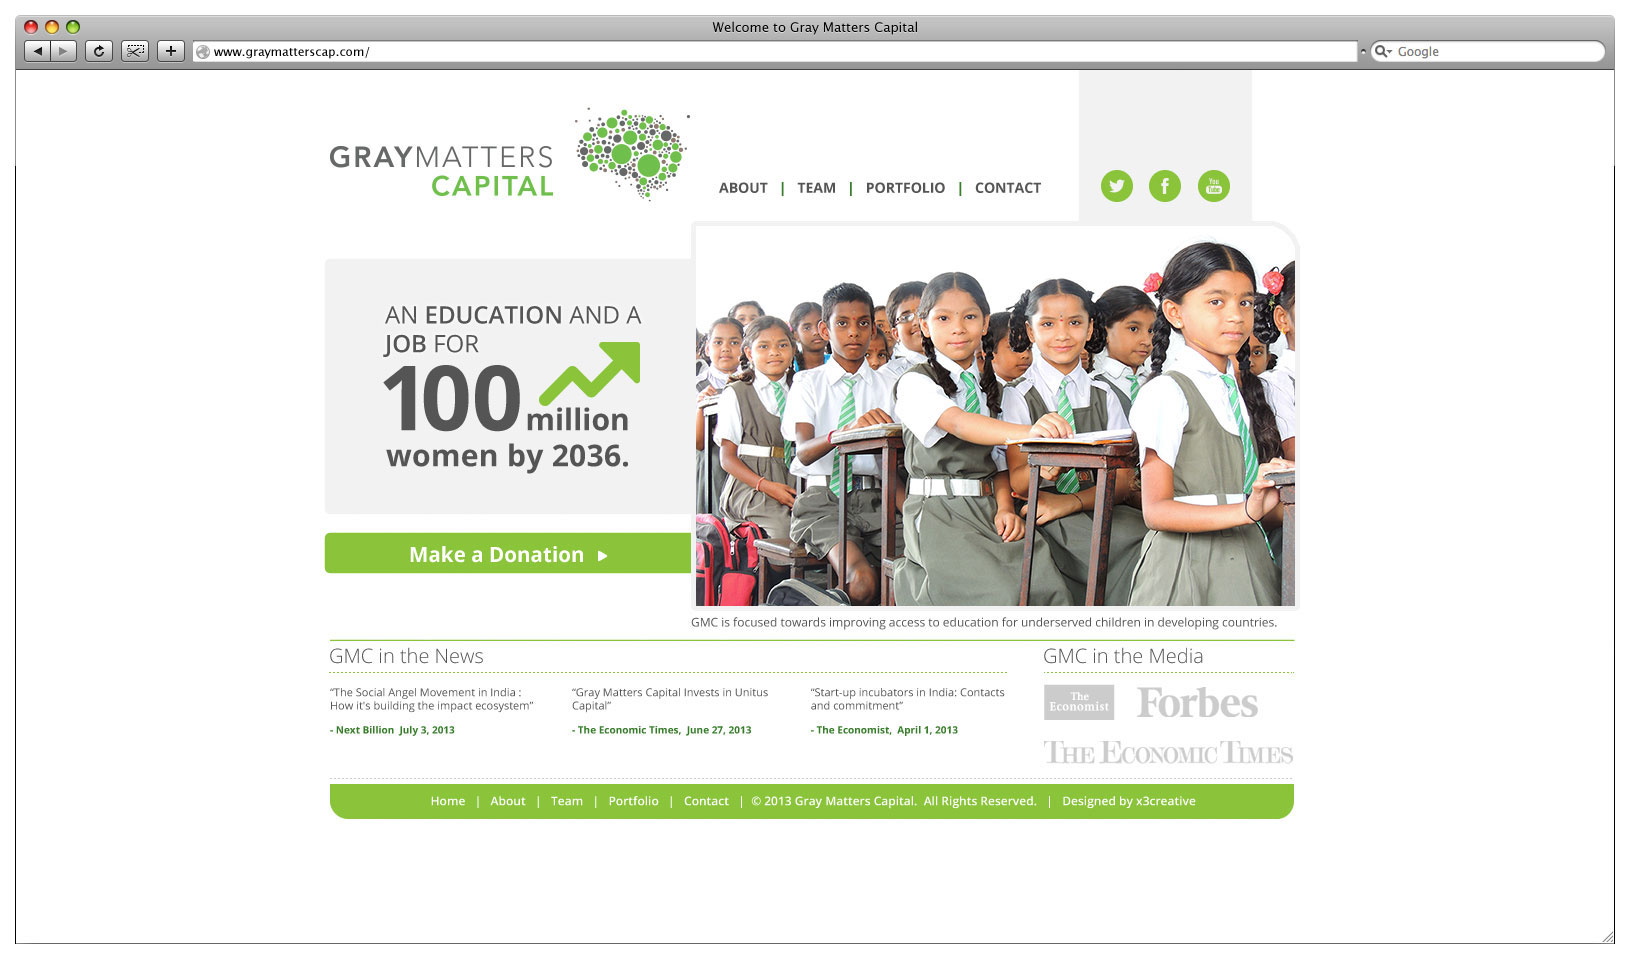 Gray Matters Capital Website - Landing Page